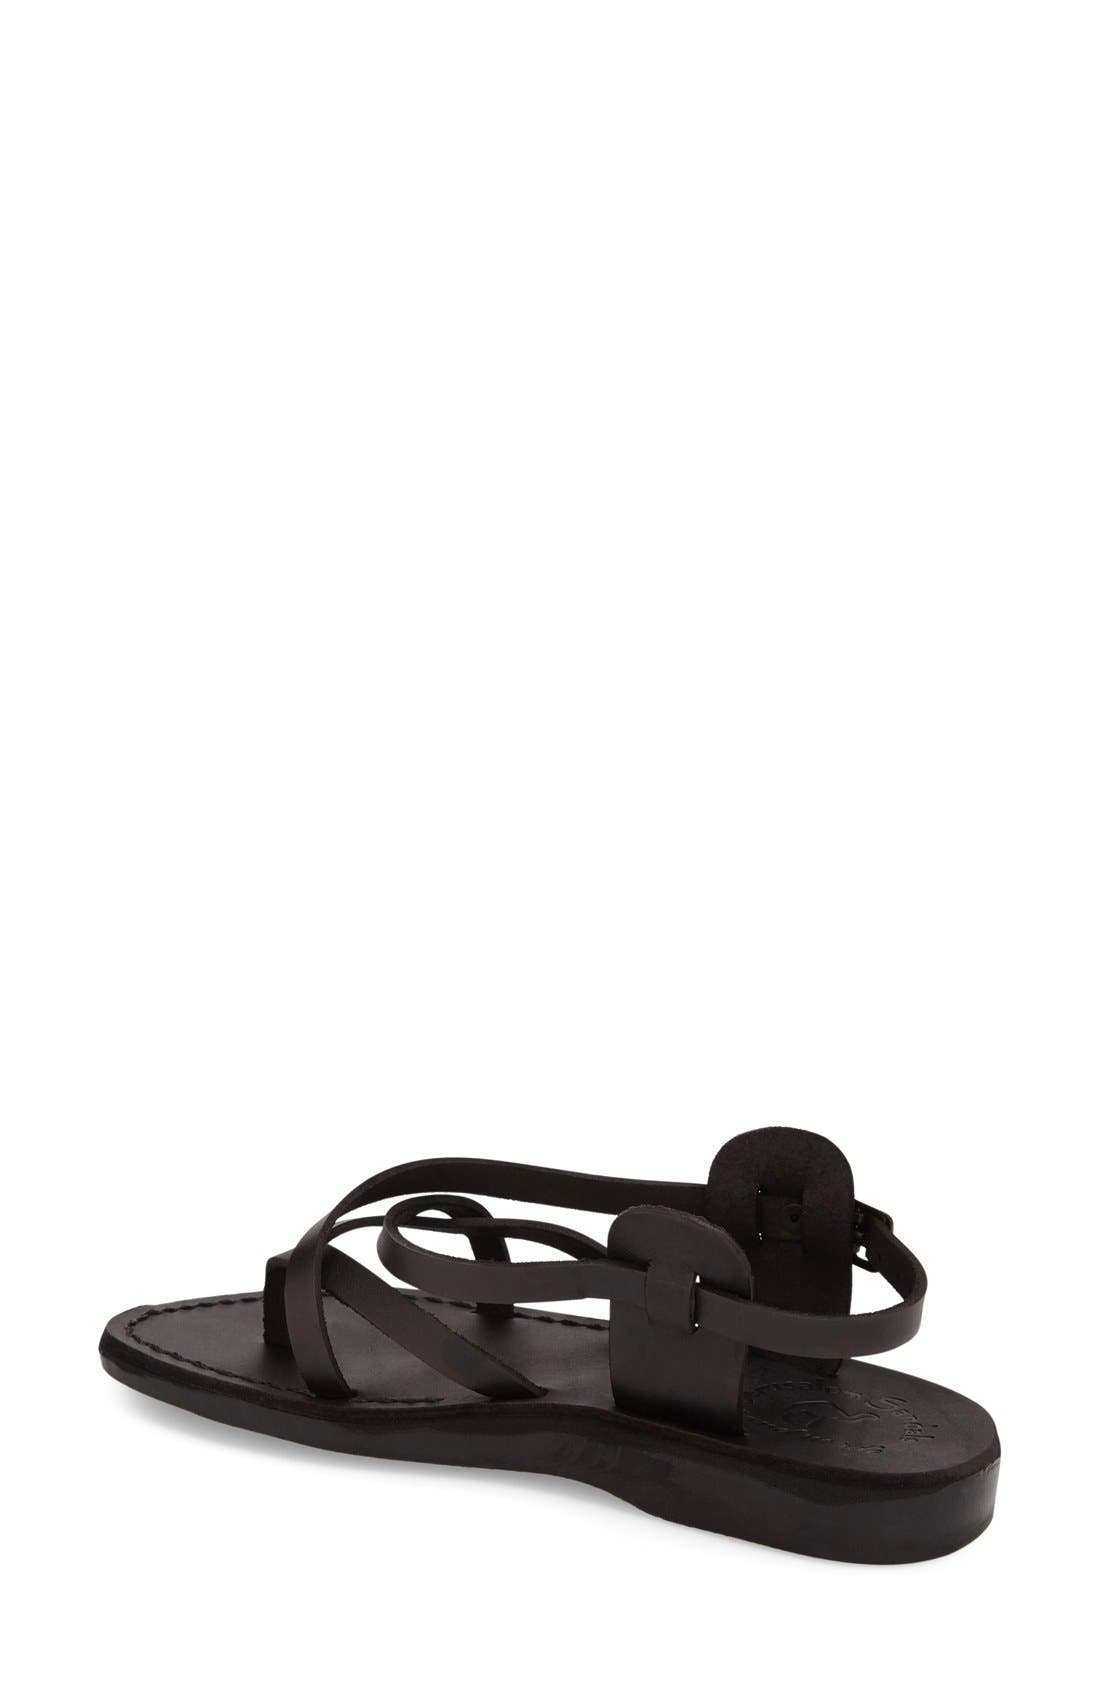 'Tamar' Strappy Sandal,                             Alternate thumbnail 6, color,